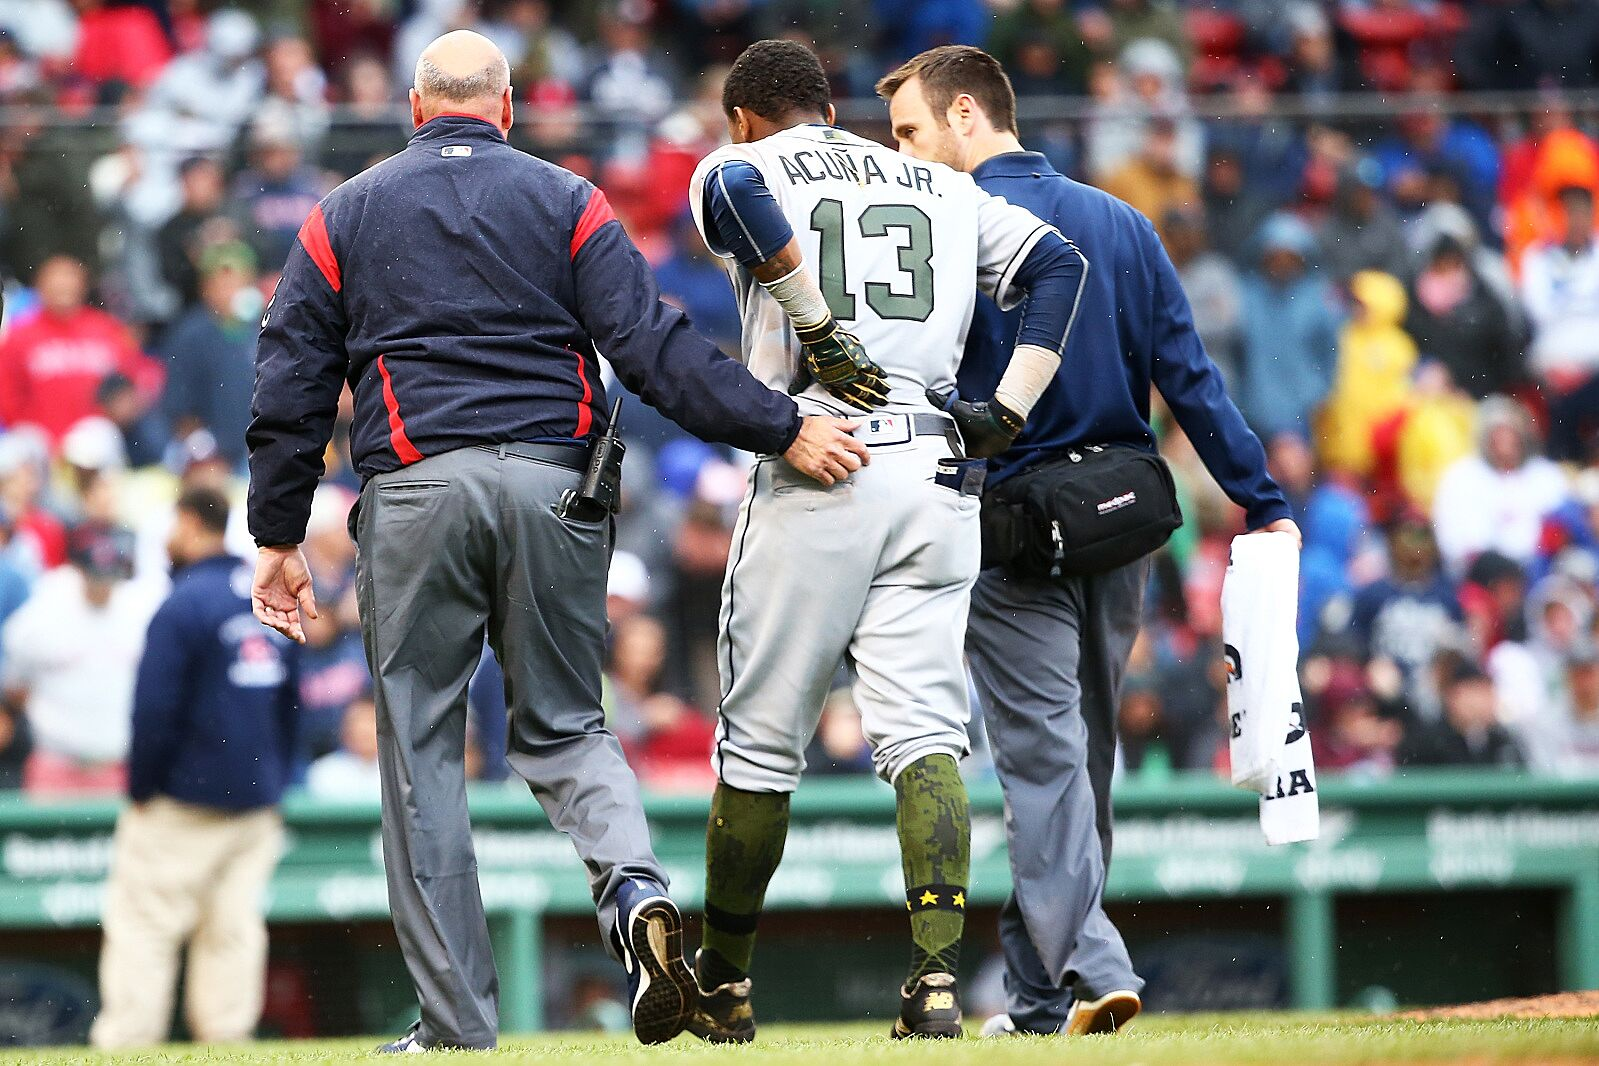 Ronald Acuna Jr. #13 of the Atlanta Braves is helped off the field after an injury at first base in the seventh inning of a game against the Atlanta Braves at Fenway Park on May 27, 2018 in Boston, Massachusetts